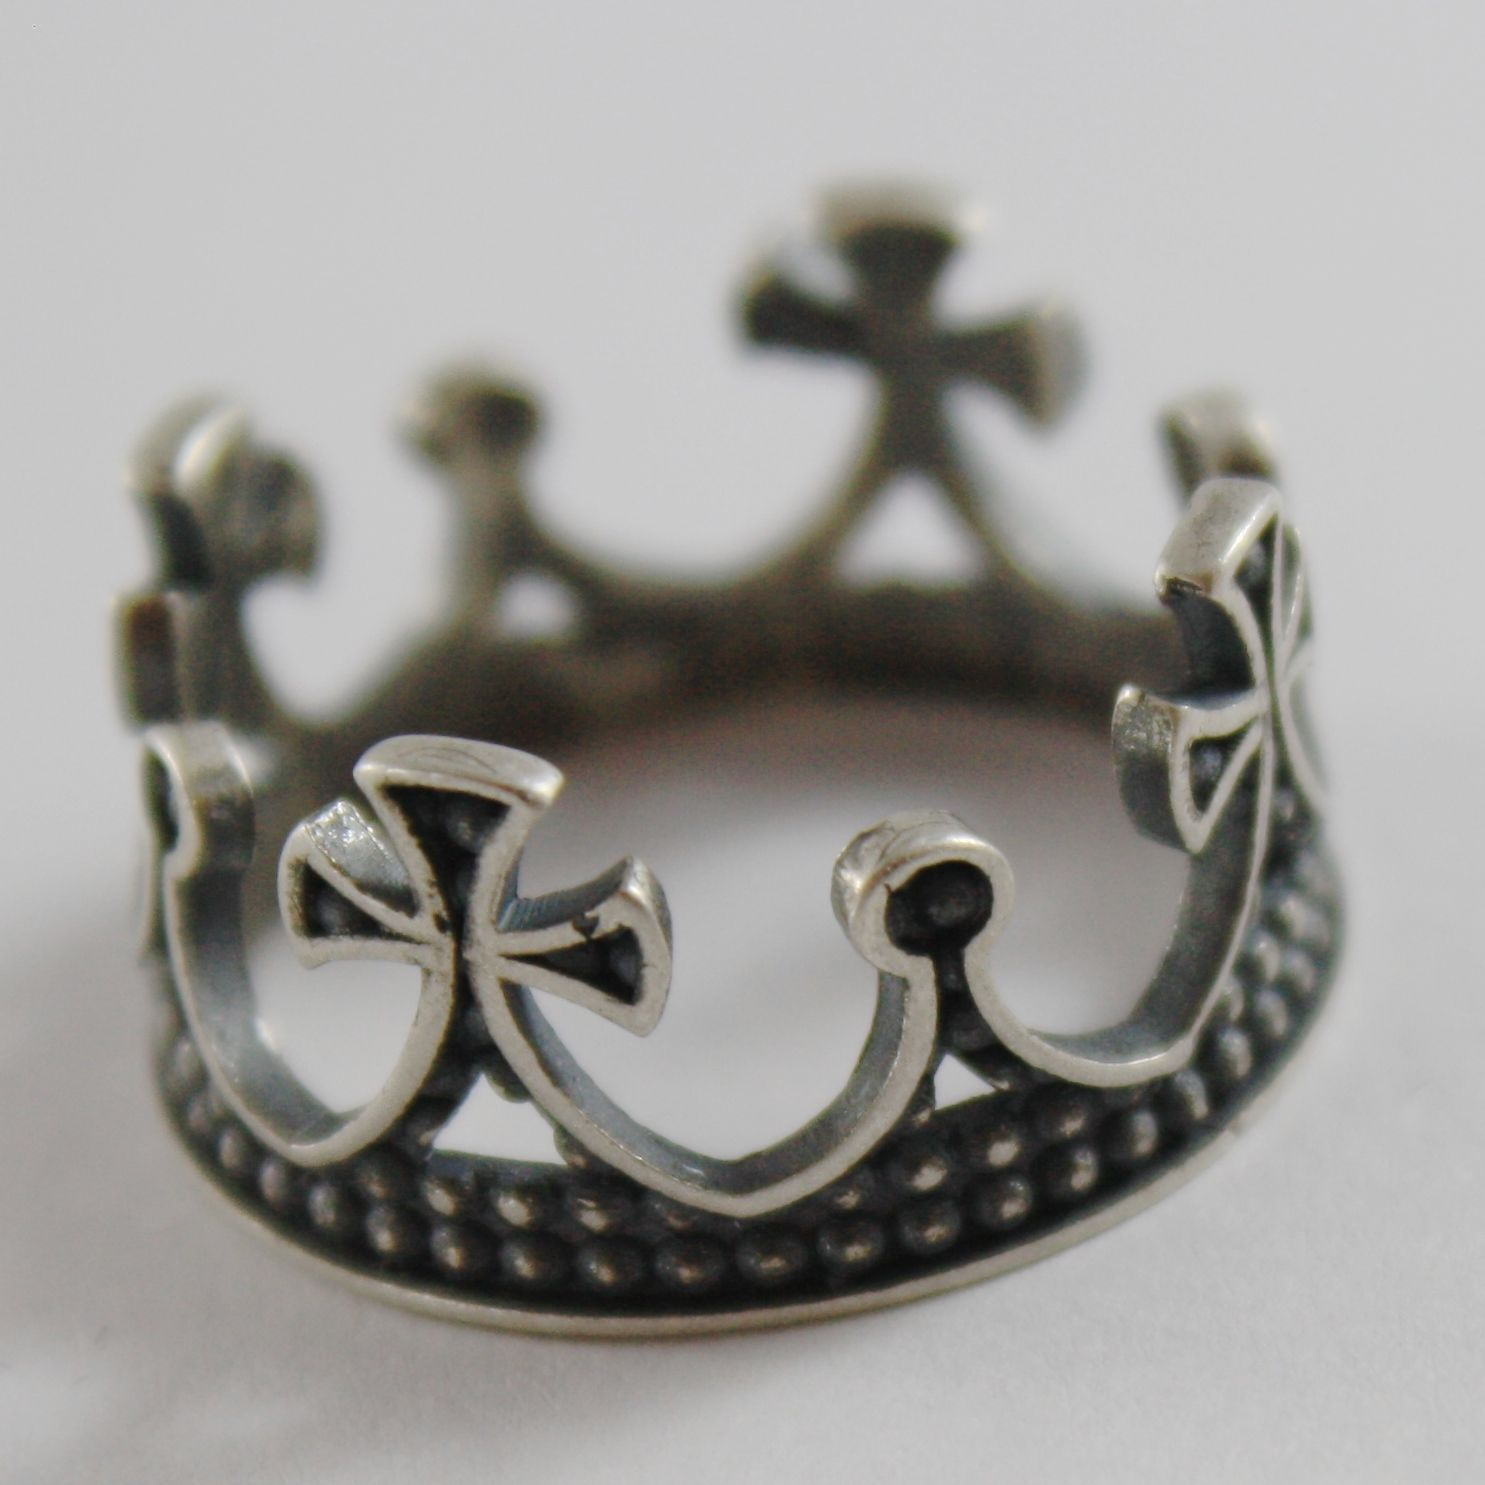 925 SILVER RING BURNISHED WITH CROWN MEDIEVAL VINTAGE STYLE MADE IN ITALY